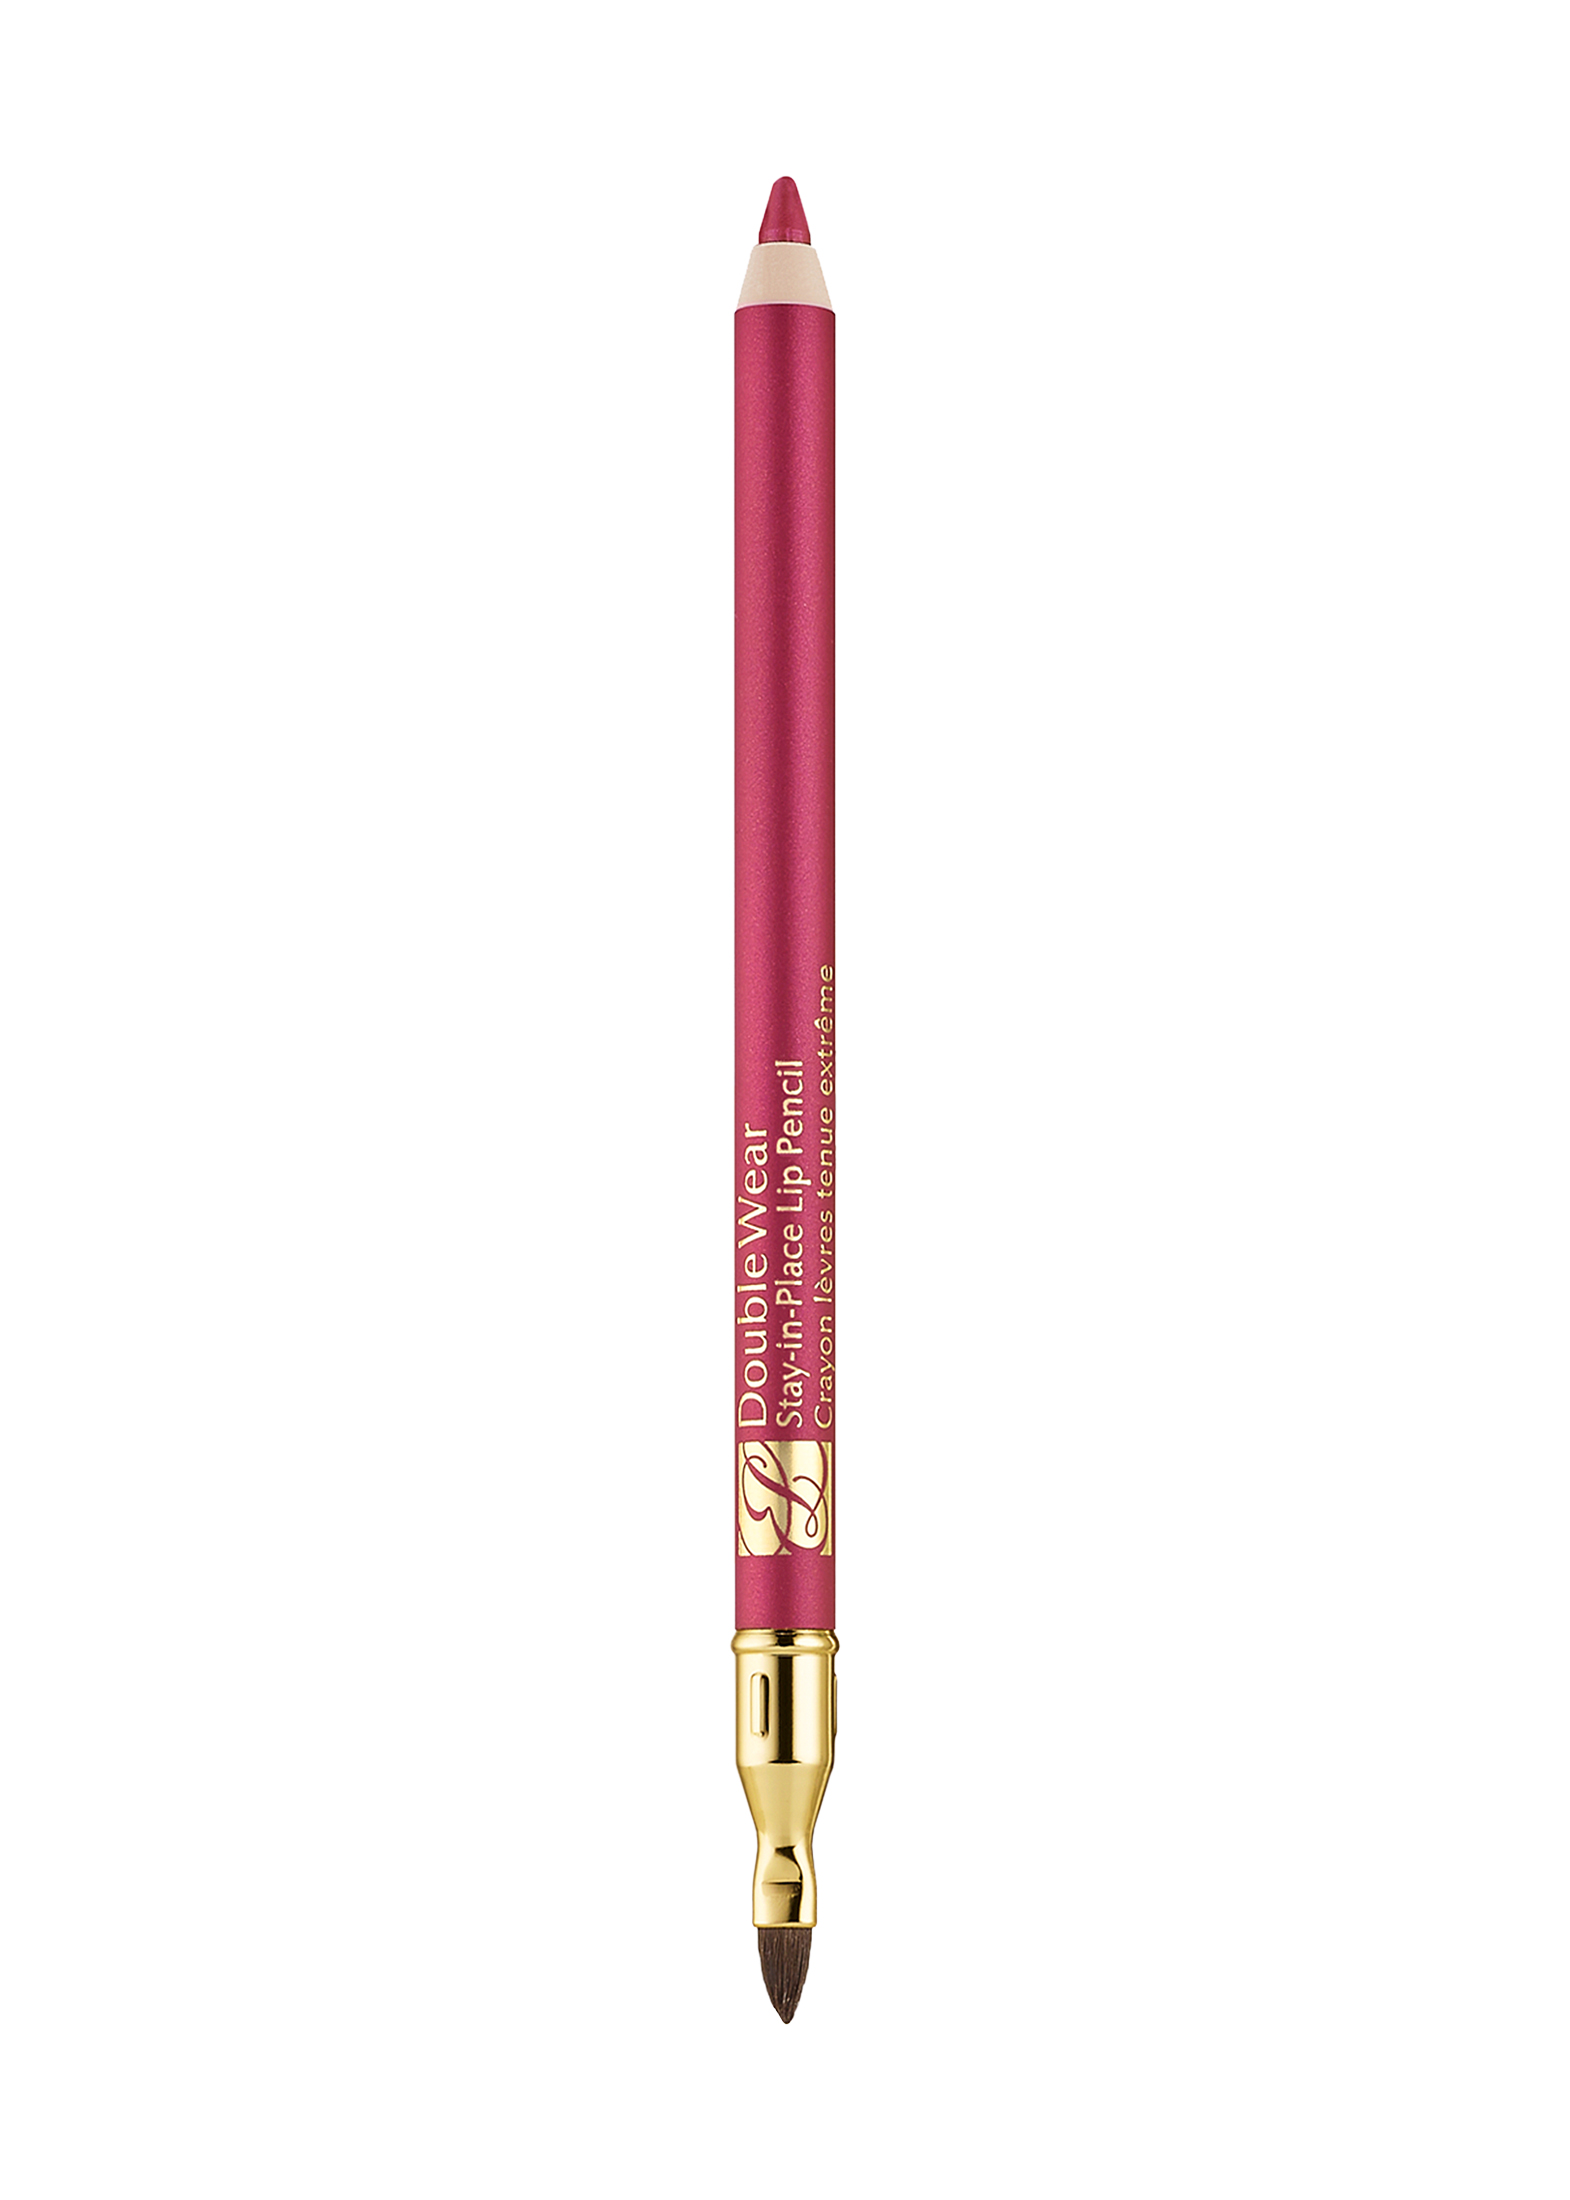 EL, DOUBLE WEAR STAY-IN-PLACE LIP PENCIL image number 0